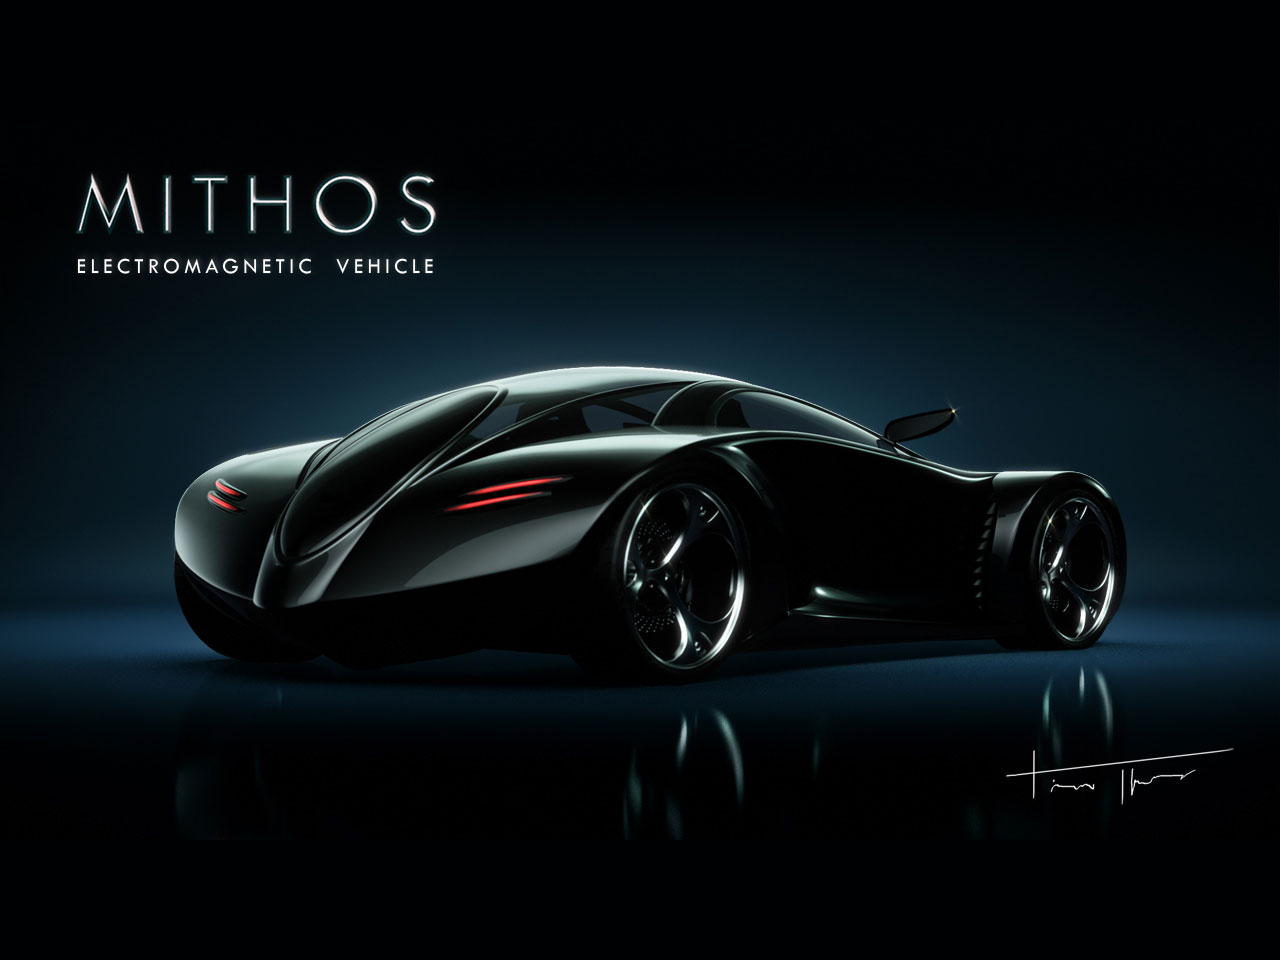 Mithos Electromagnetic Concept Vehicle- Future Sports Car